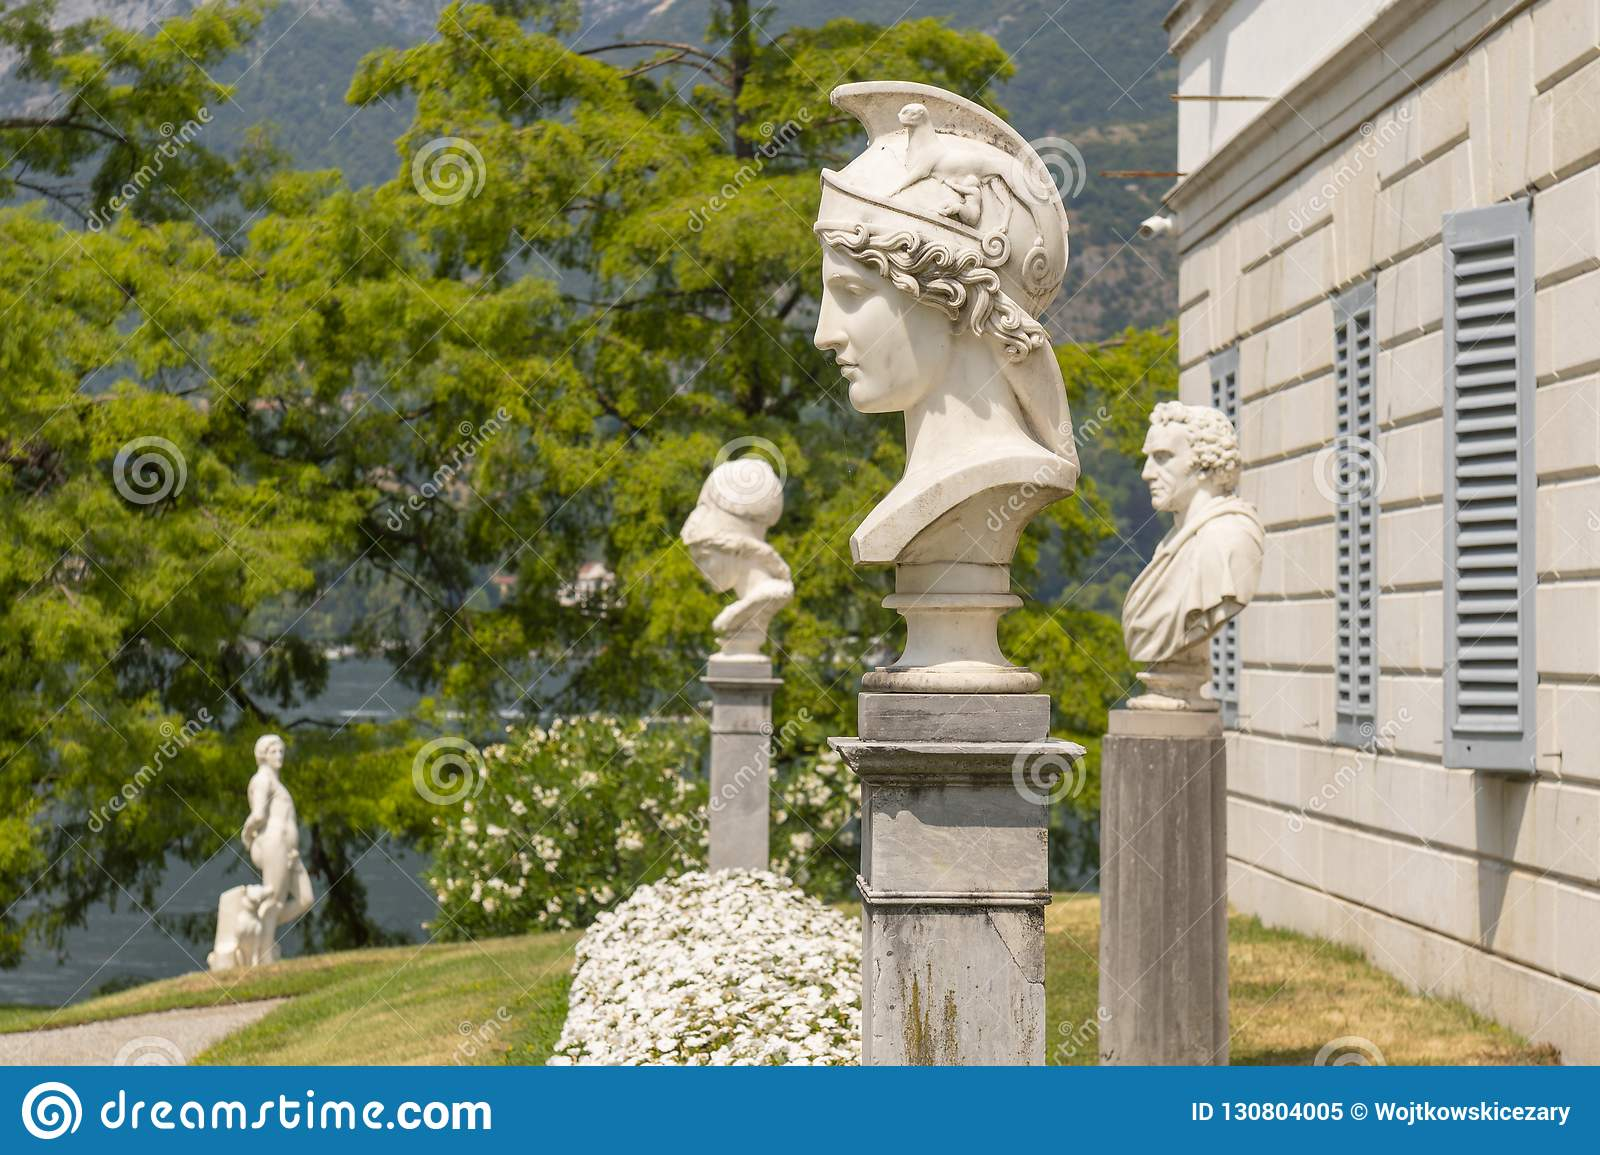 Herm of Athena in italian garden of Villa Melzi in Bellagio, Italy.